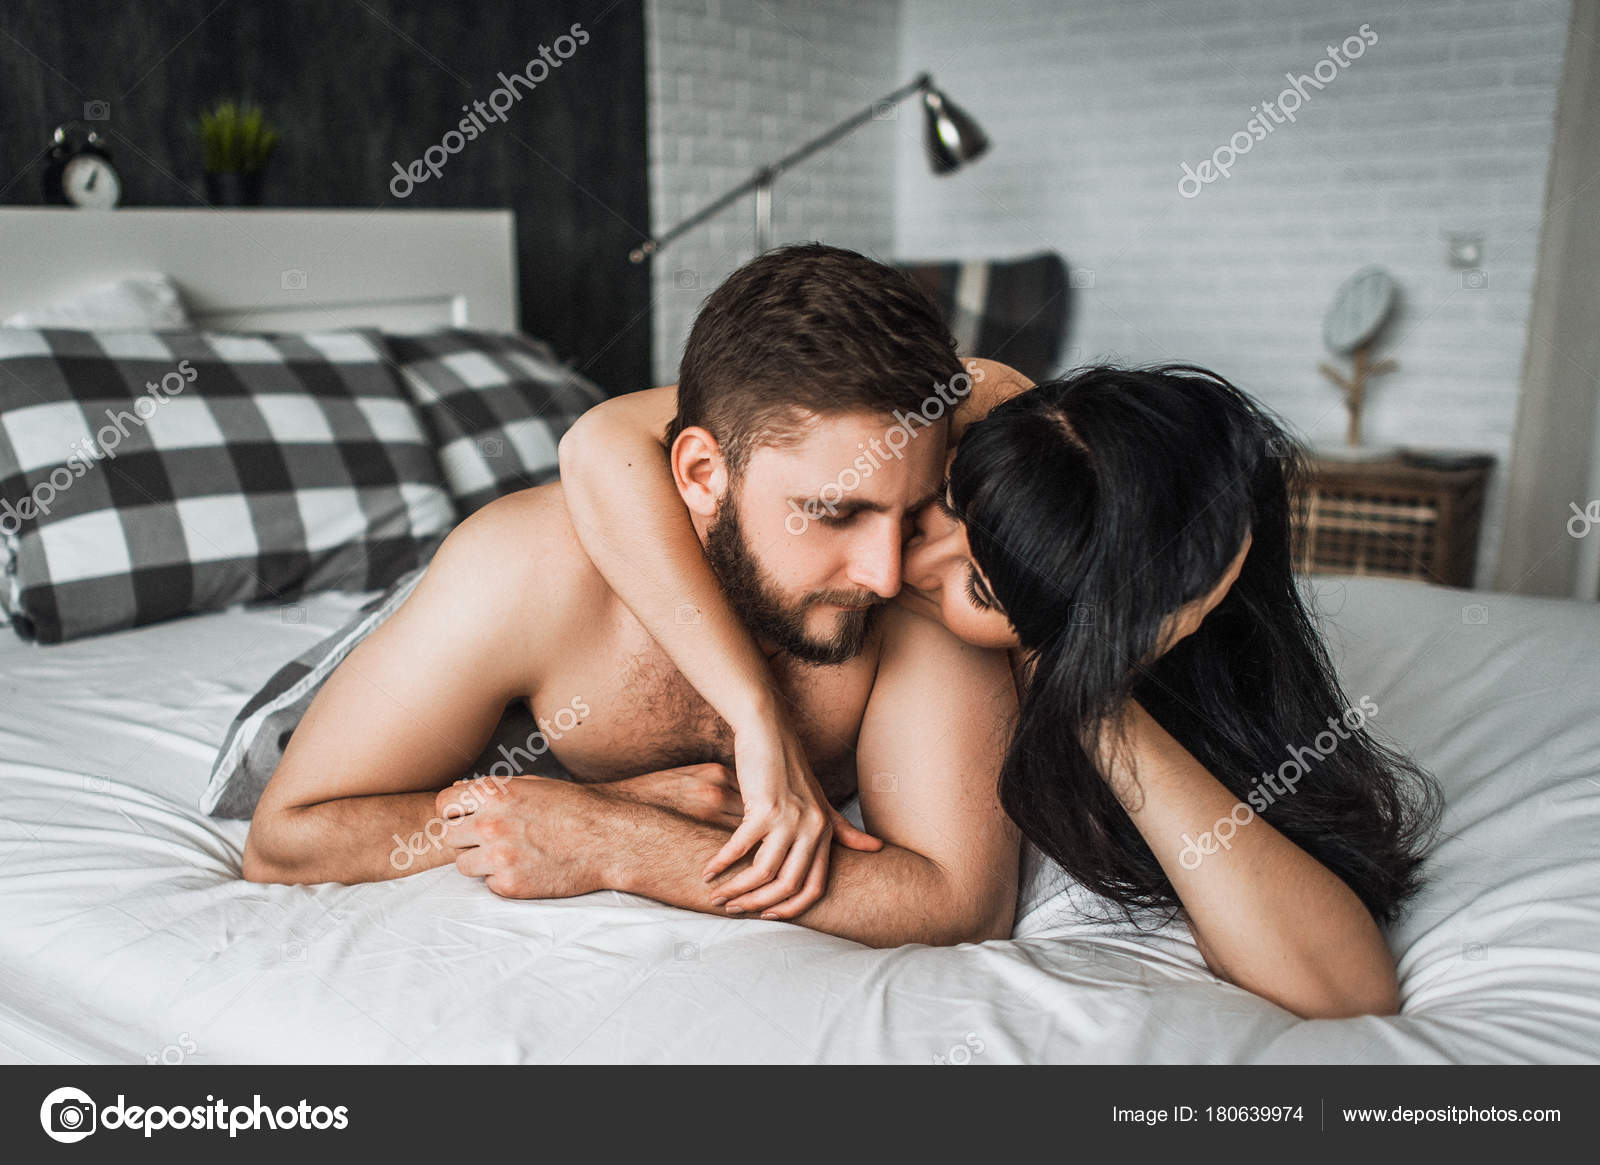 porn of the other spouse